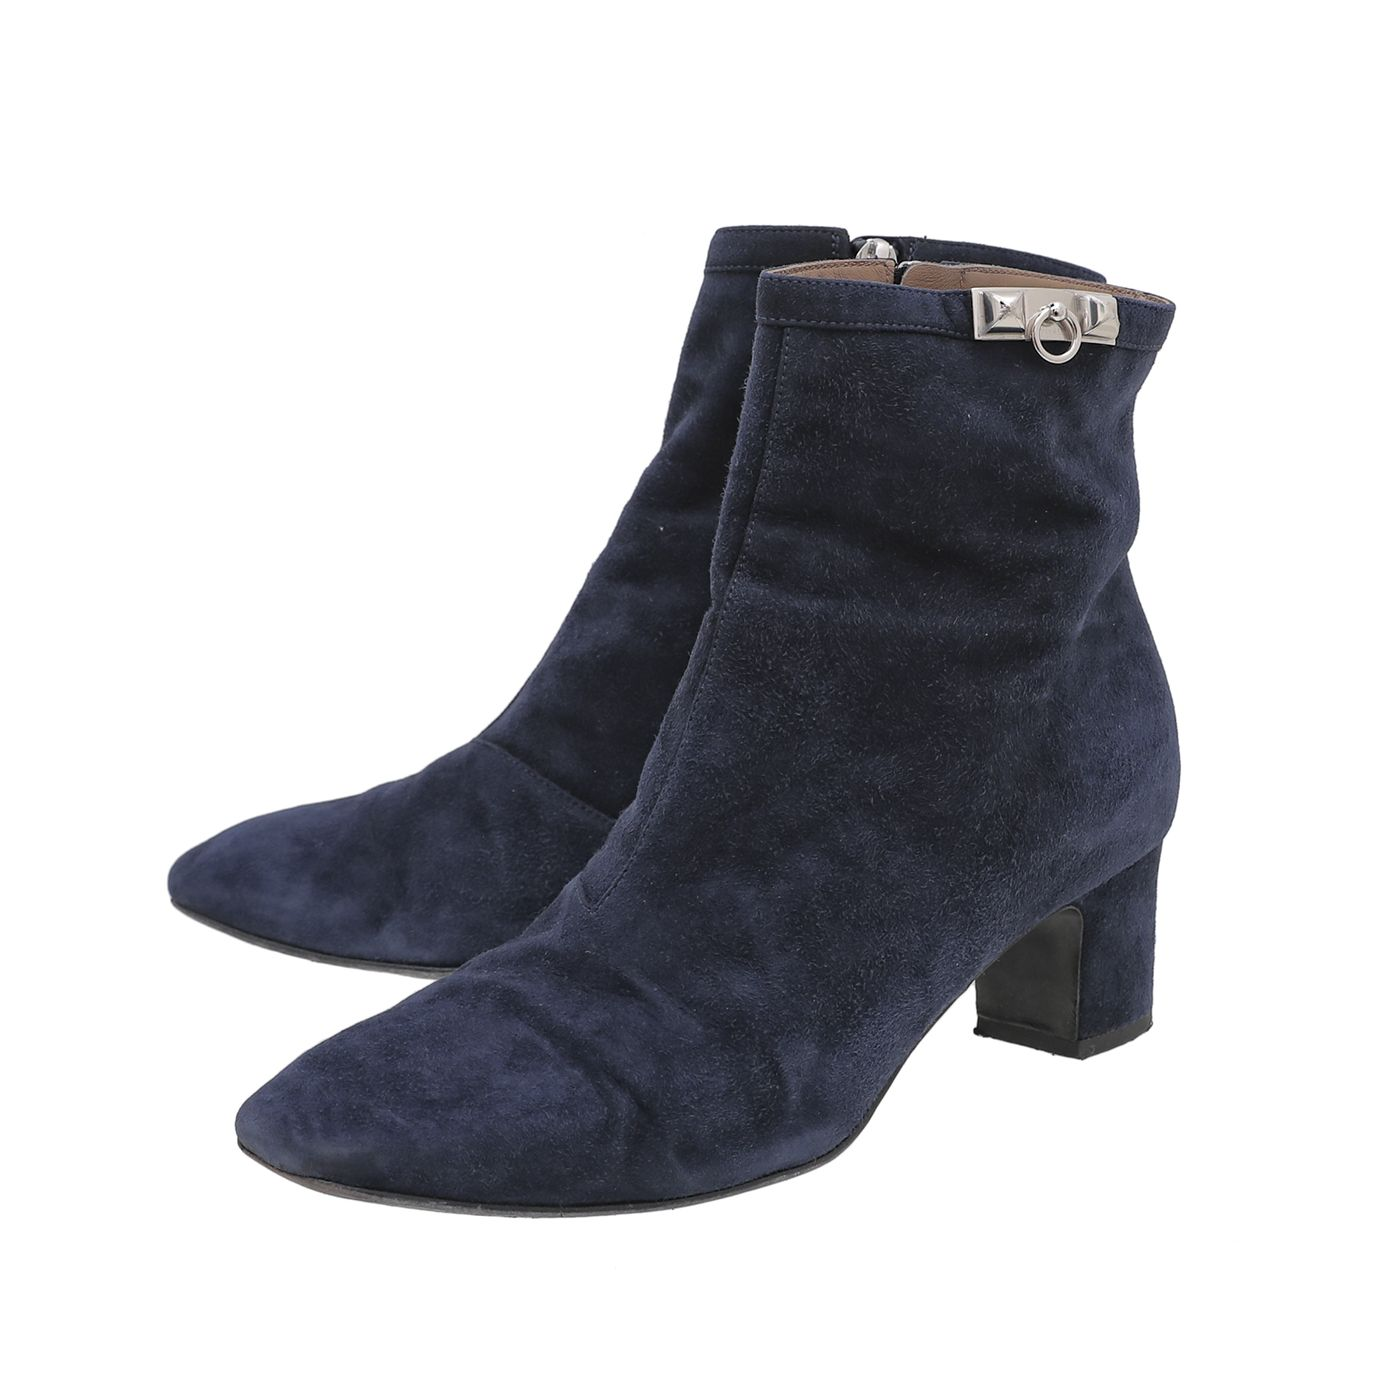 Hermes Navy Blue Suede Power Ankle Boots 38